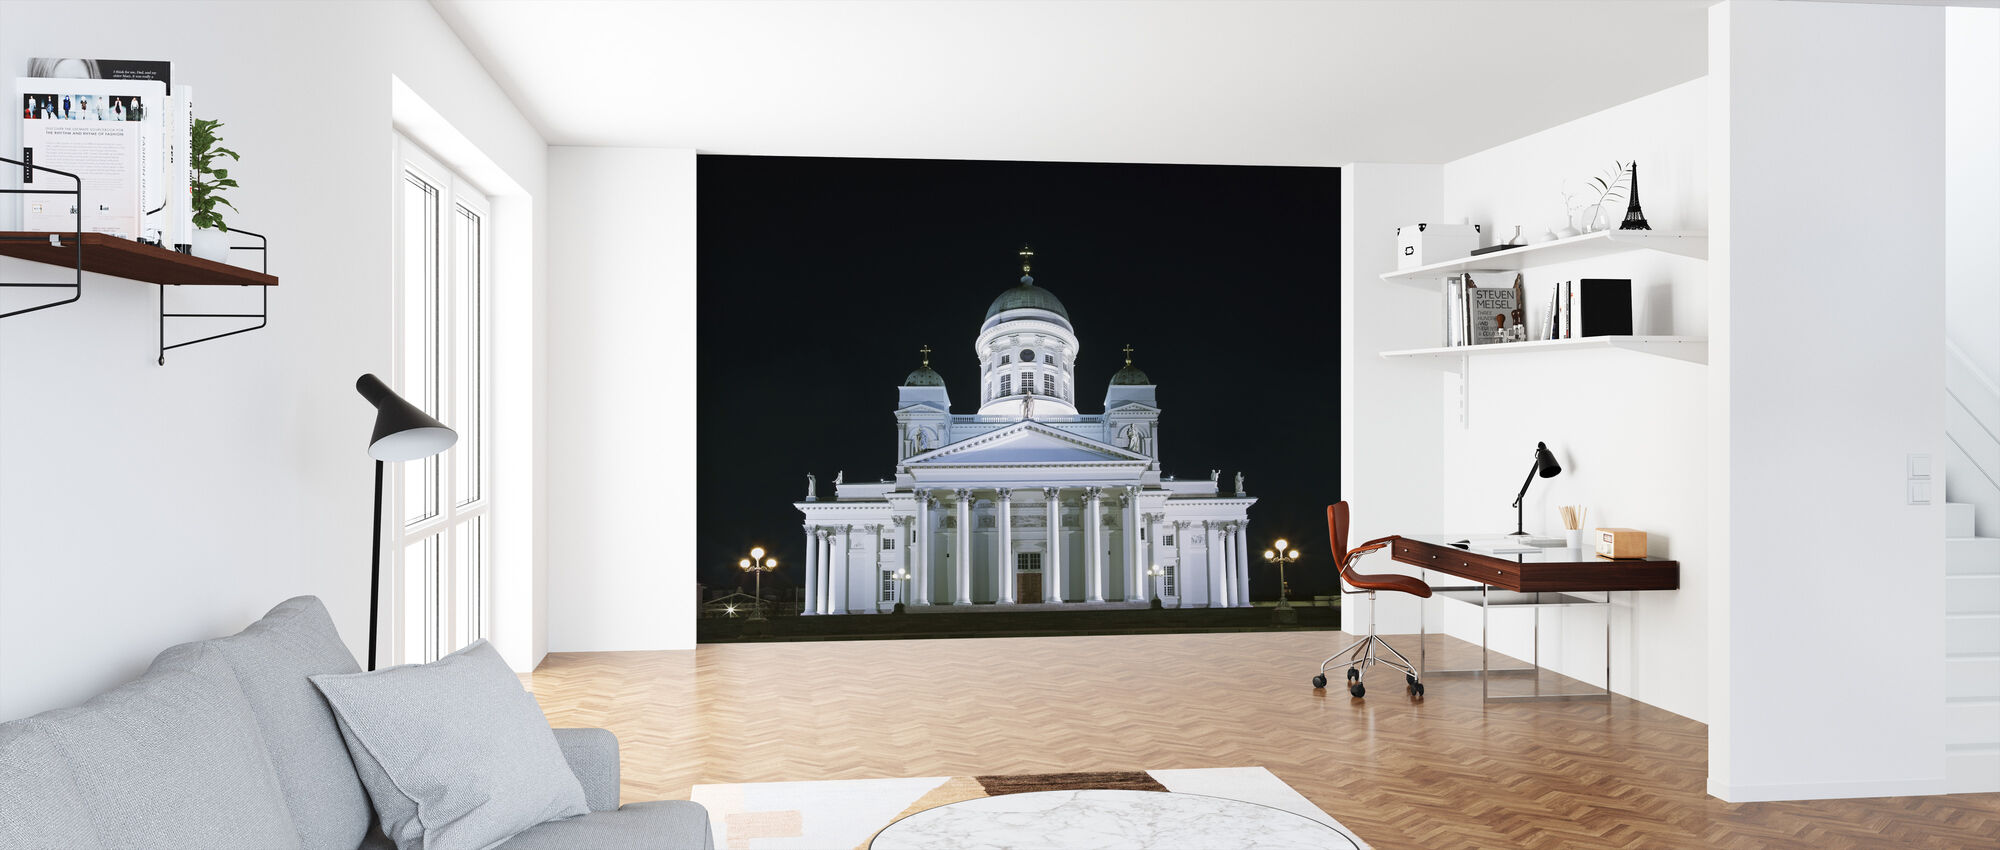 Cathedral Church - Wallpaper - Office